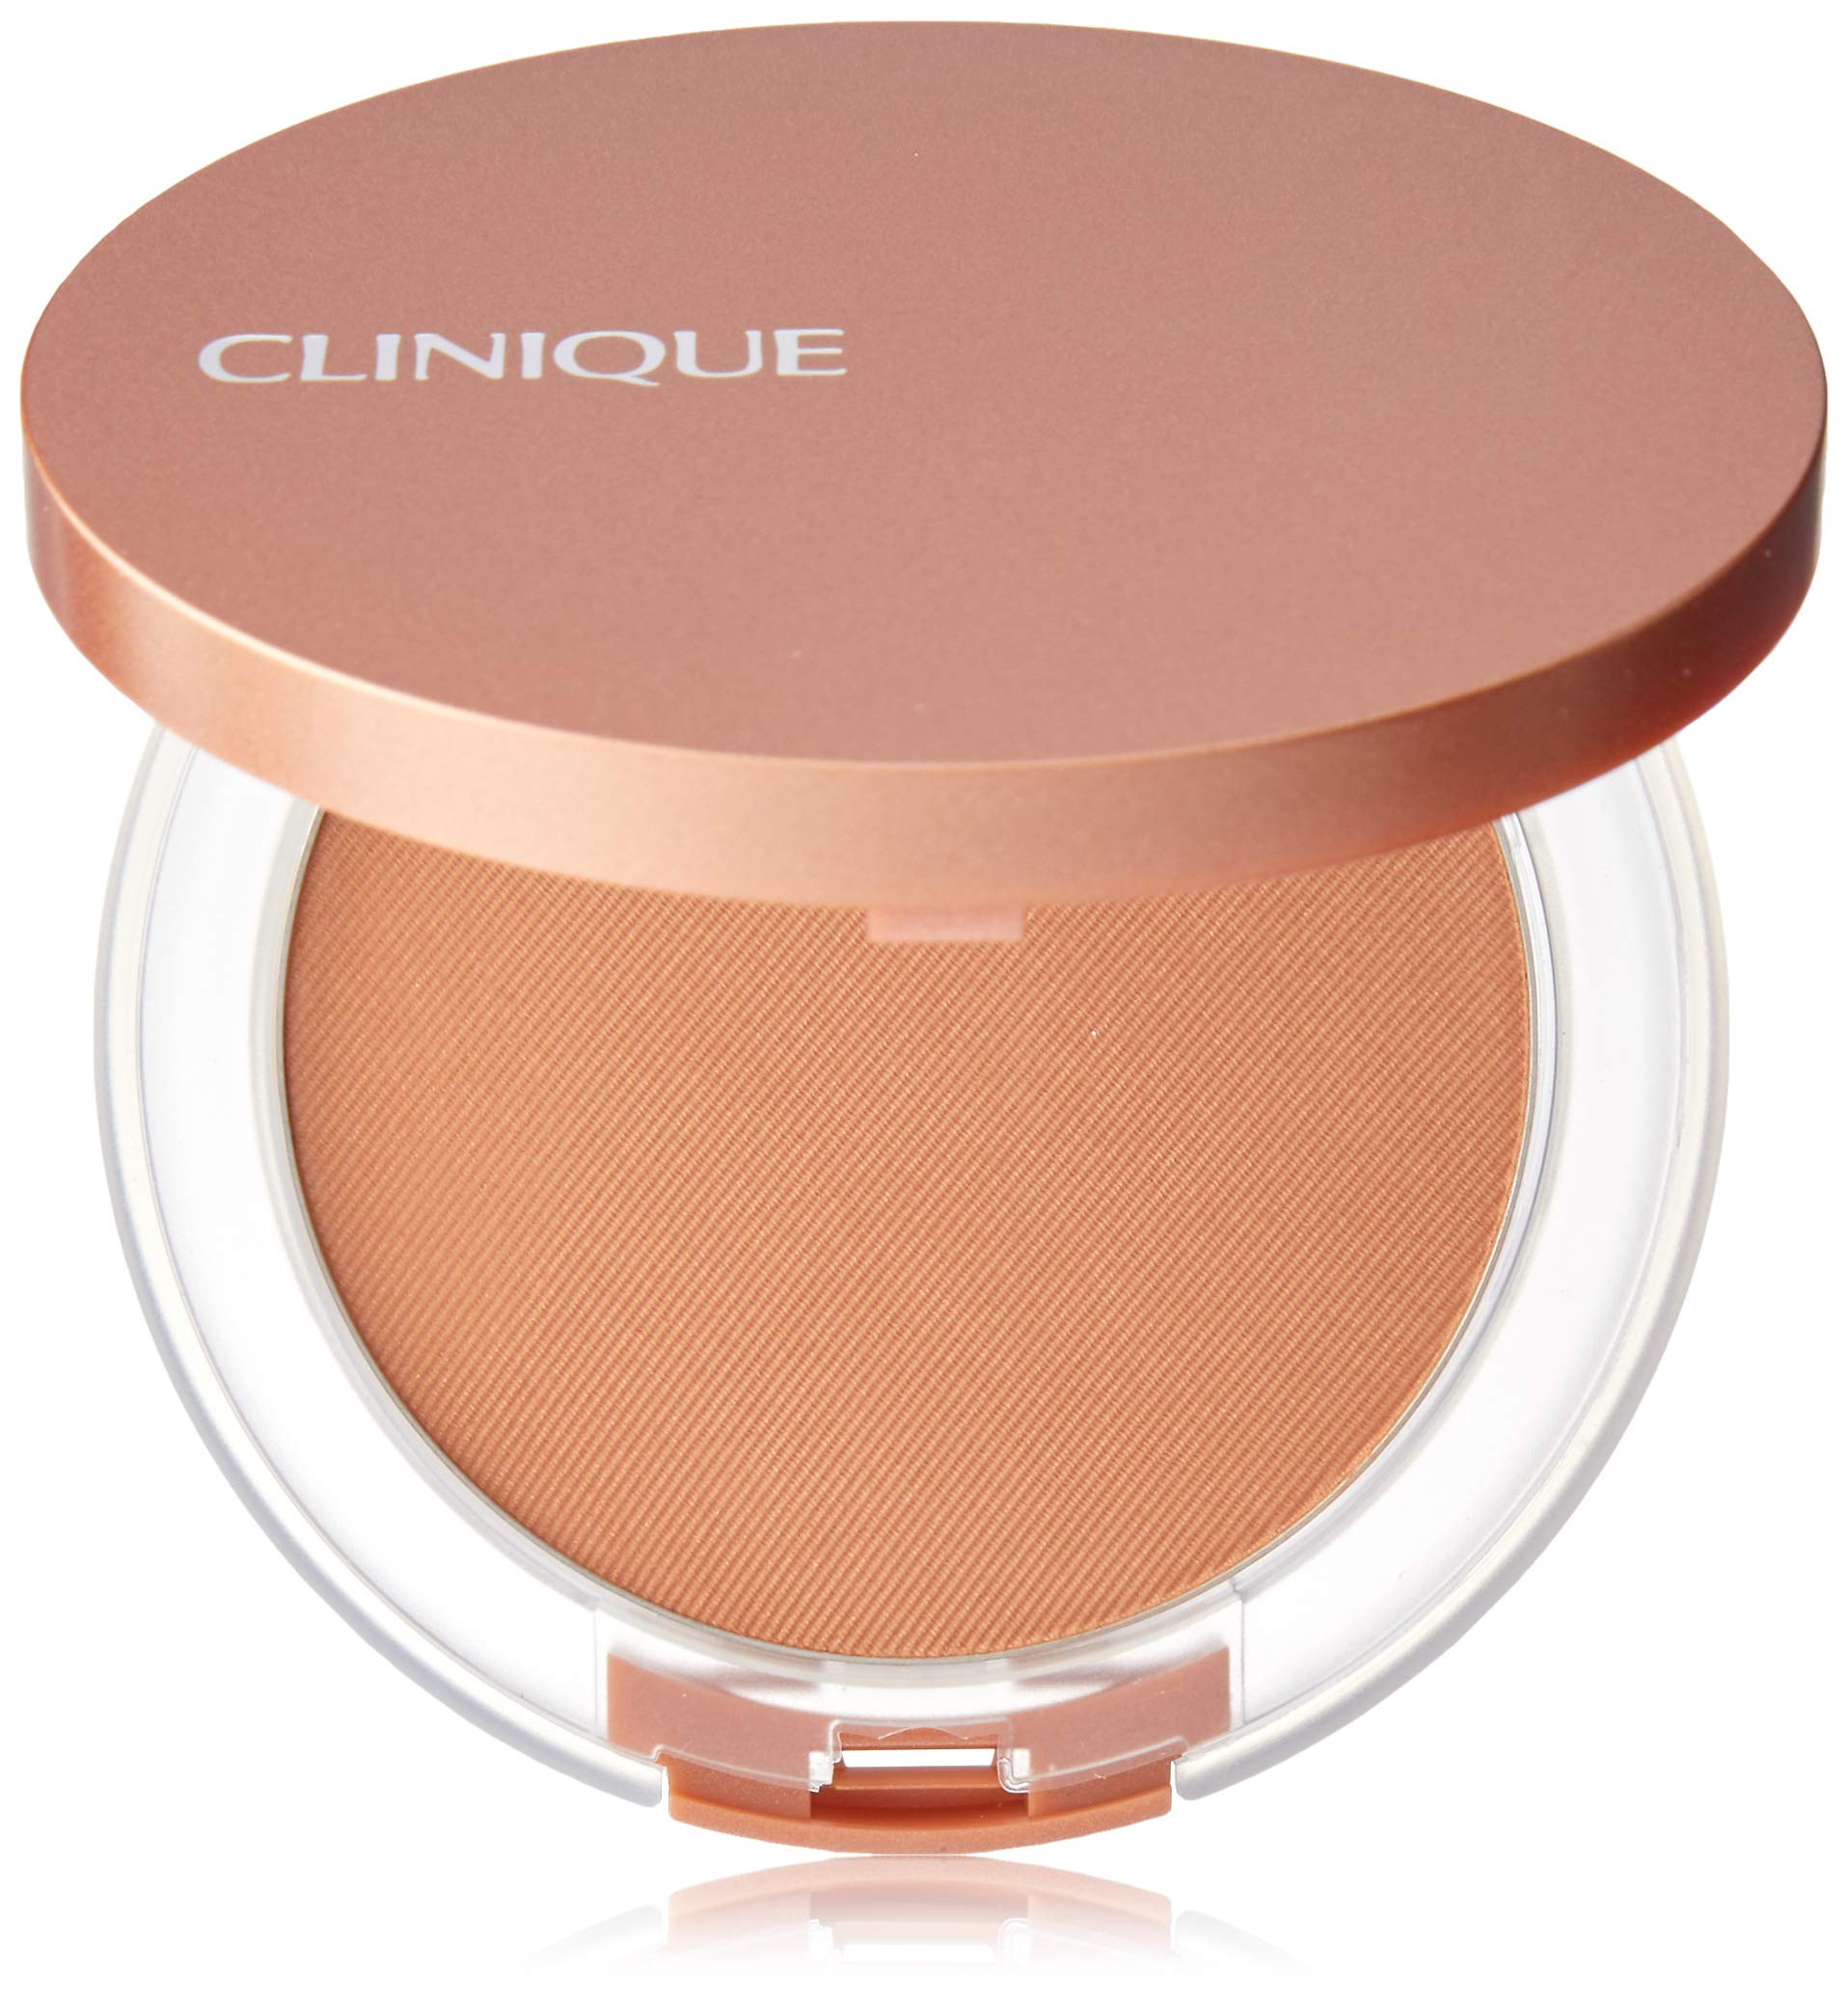 Clinique True Bronze Pressed Powder Bronzer, No. 03 Sunblushed, 0.33 Ounce by Clinique (Image #1)